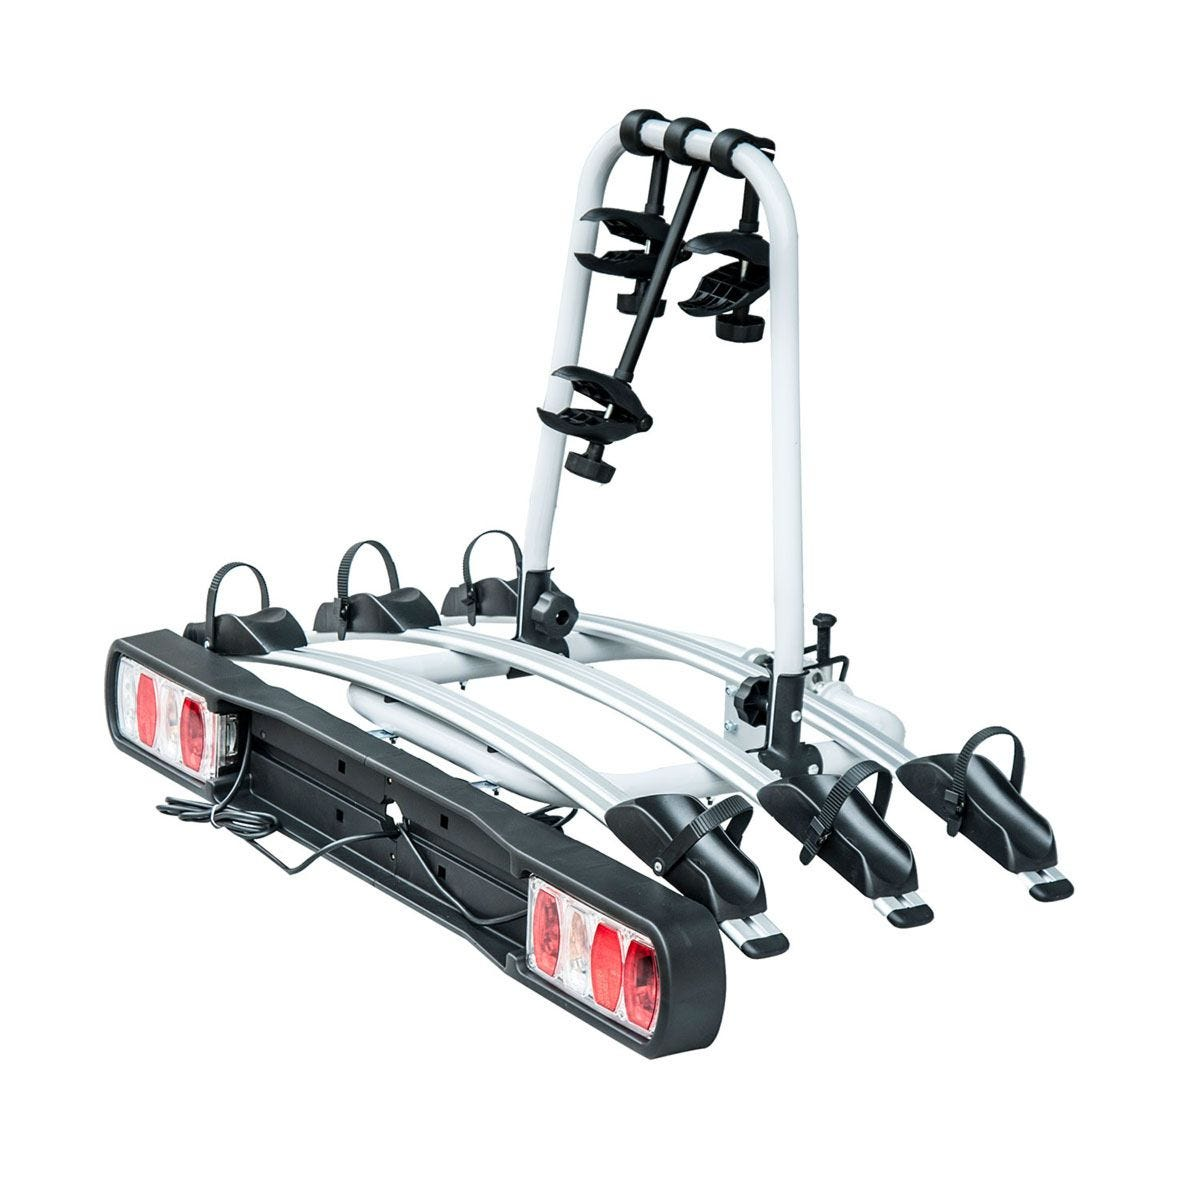 HOMCOM 3 Bicycle Carrier Rear-mounted SUV Mountain Hitch Mounted Rack - Black & Silver